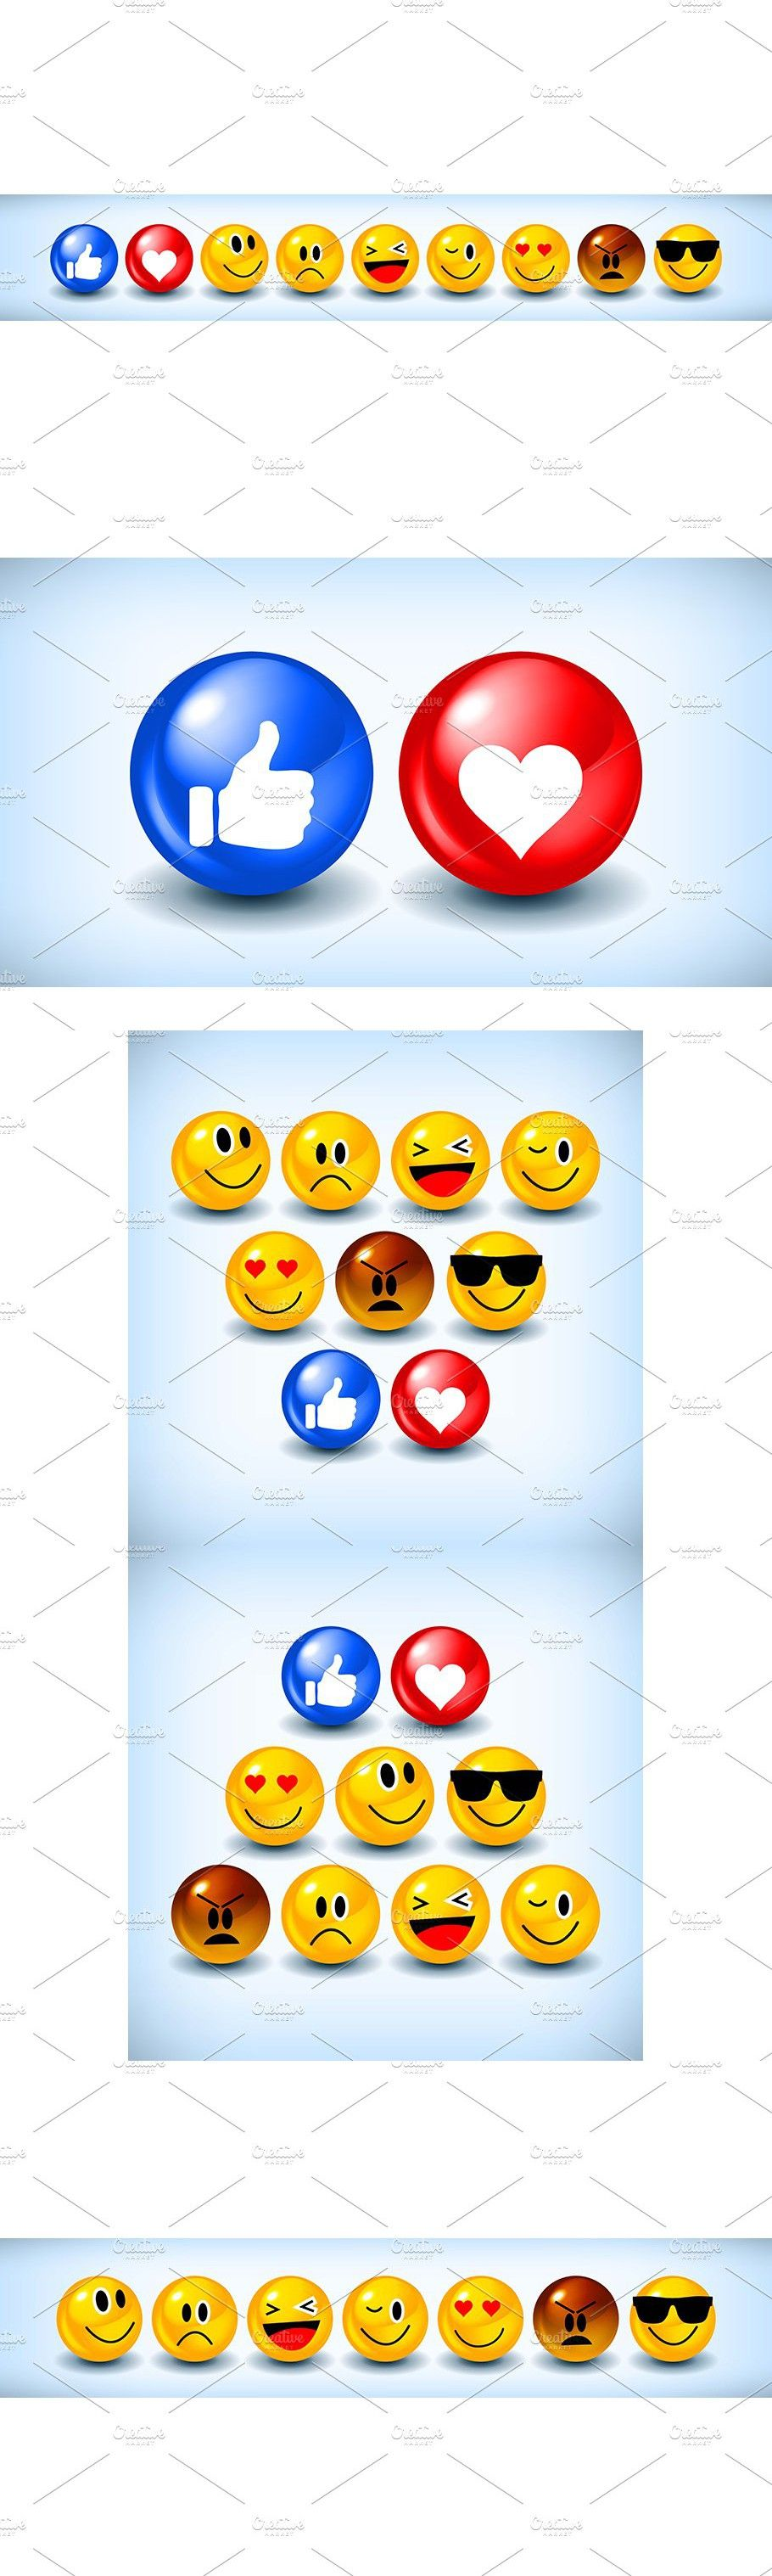 Large set of emoticons in 2020 Love heart emoji, Cartoon